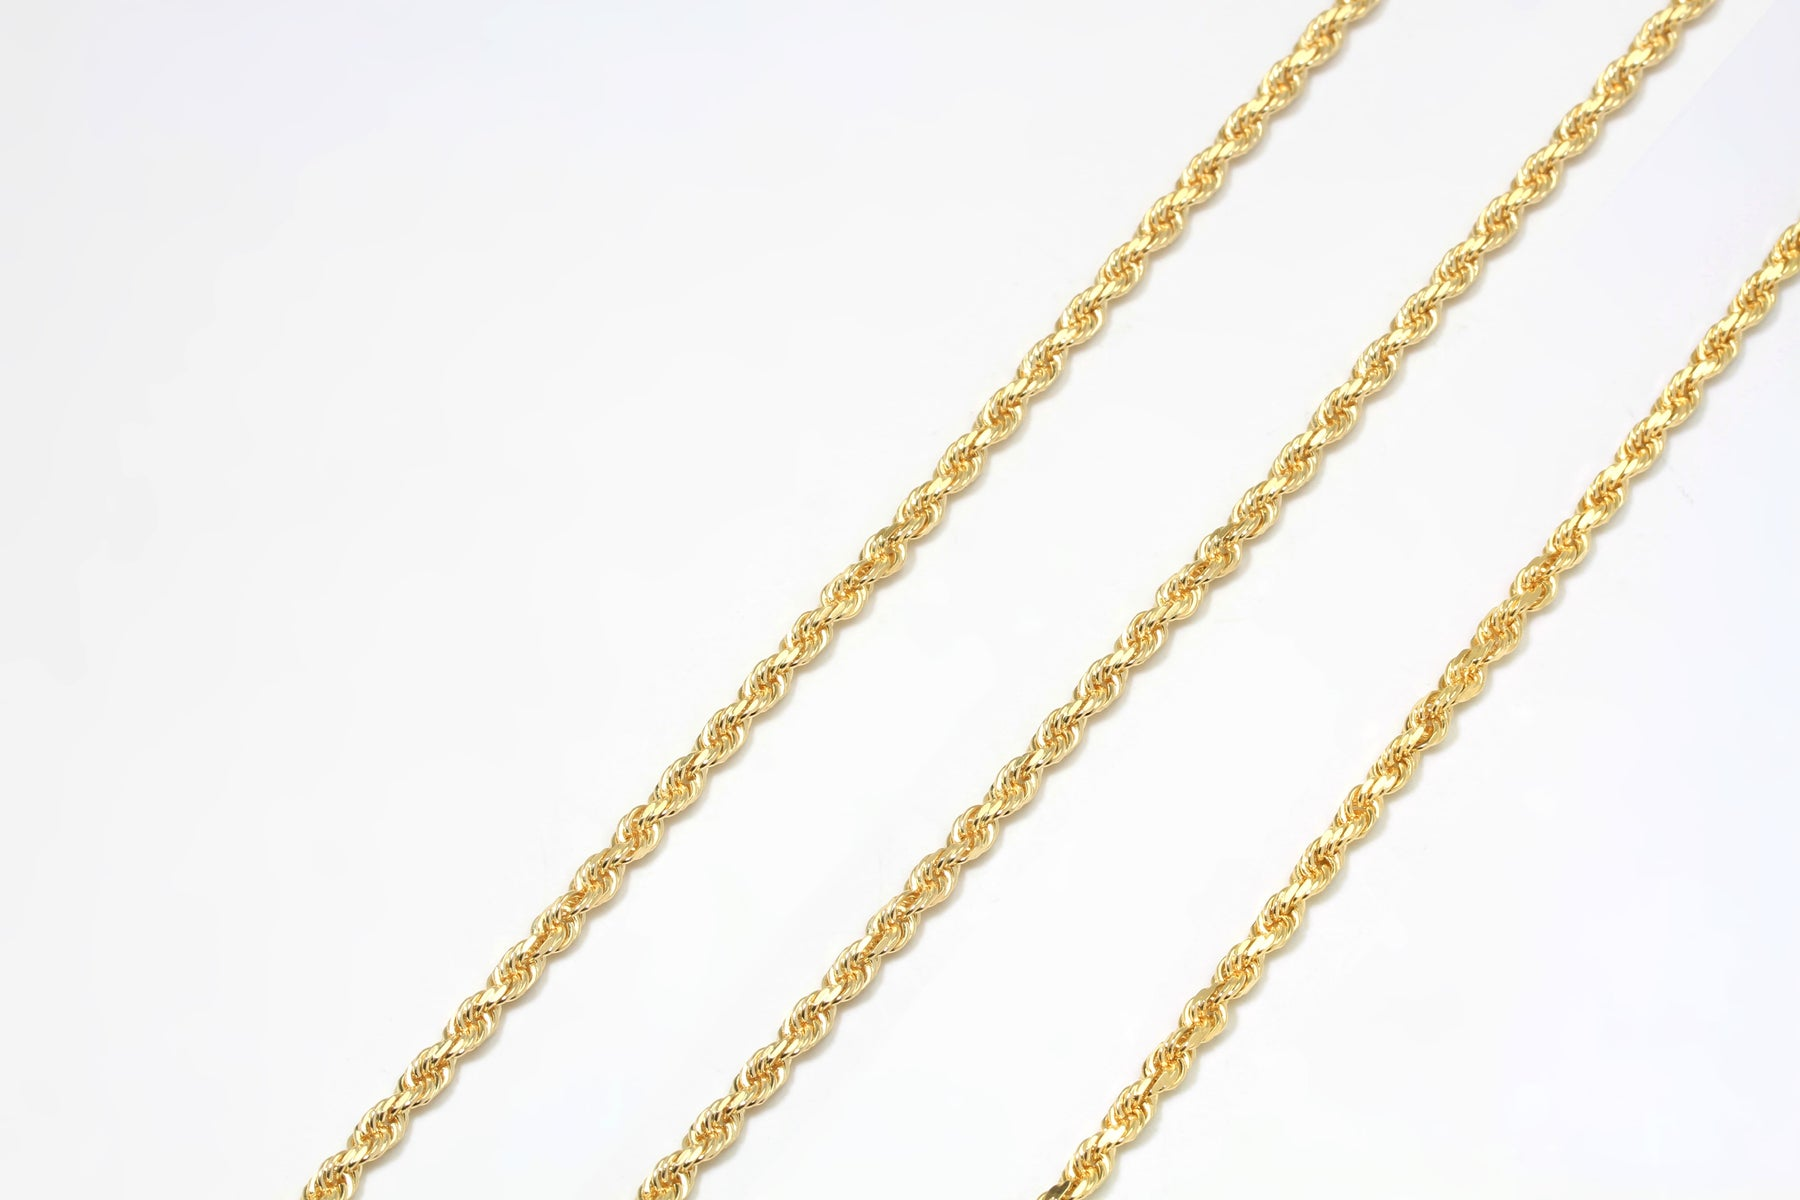 different product detail chains jewelry necklace solid of gold buy types designs